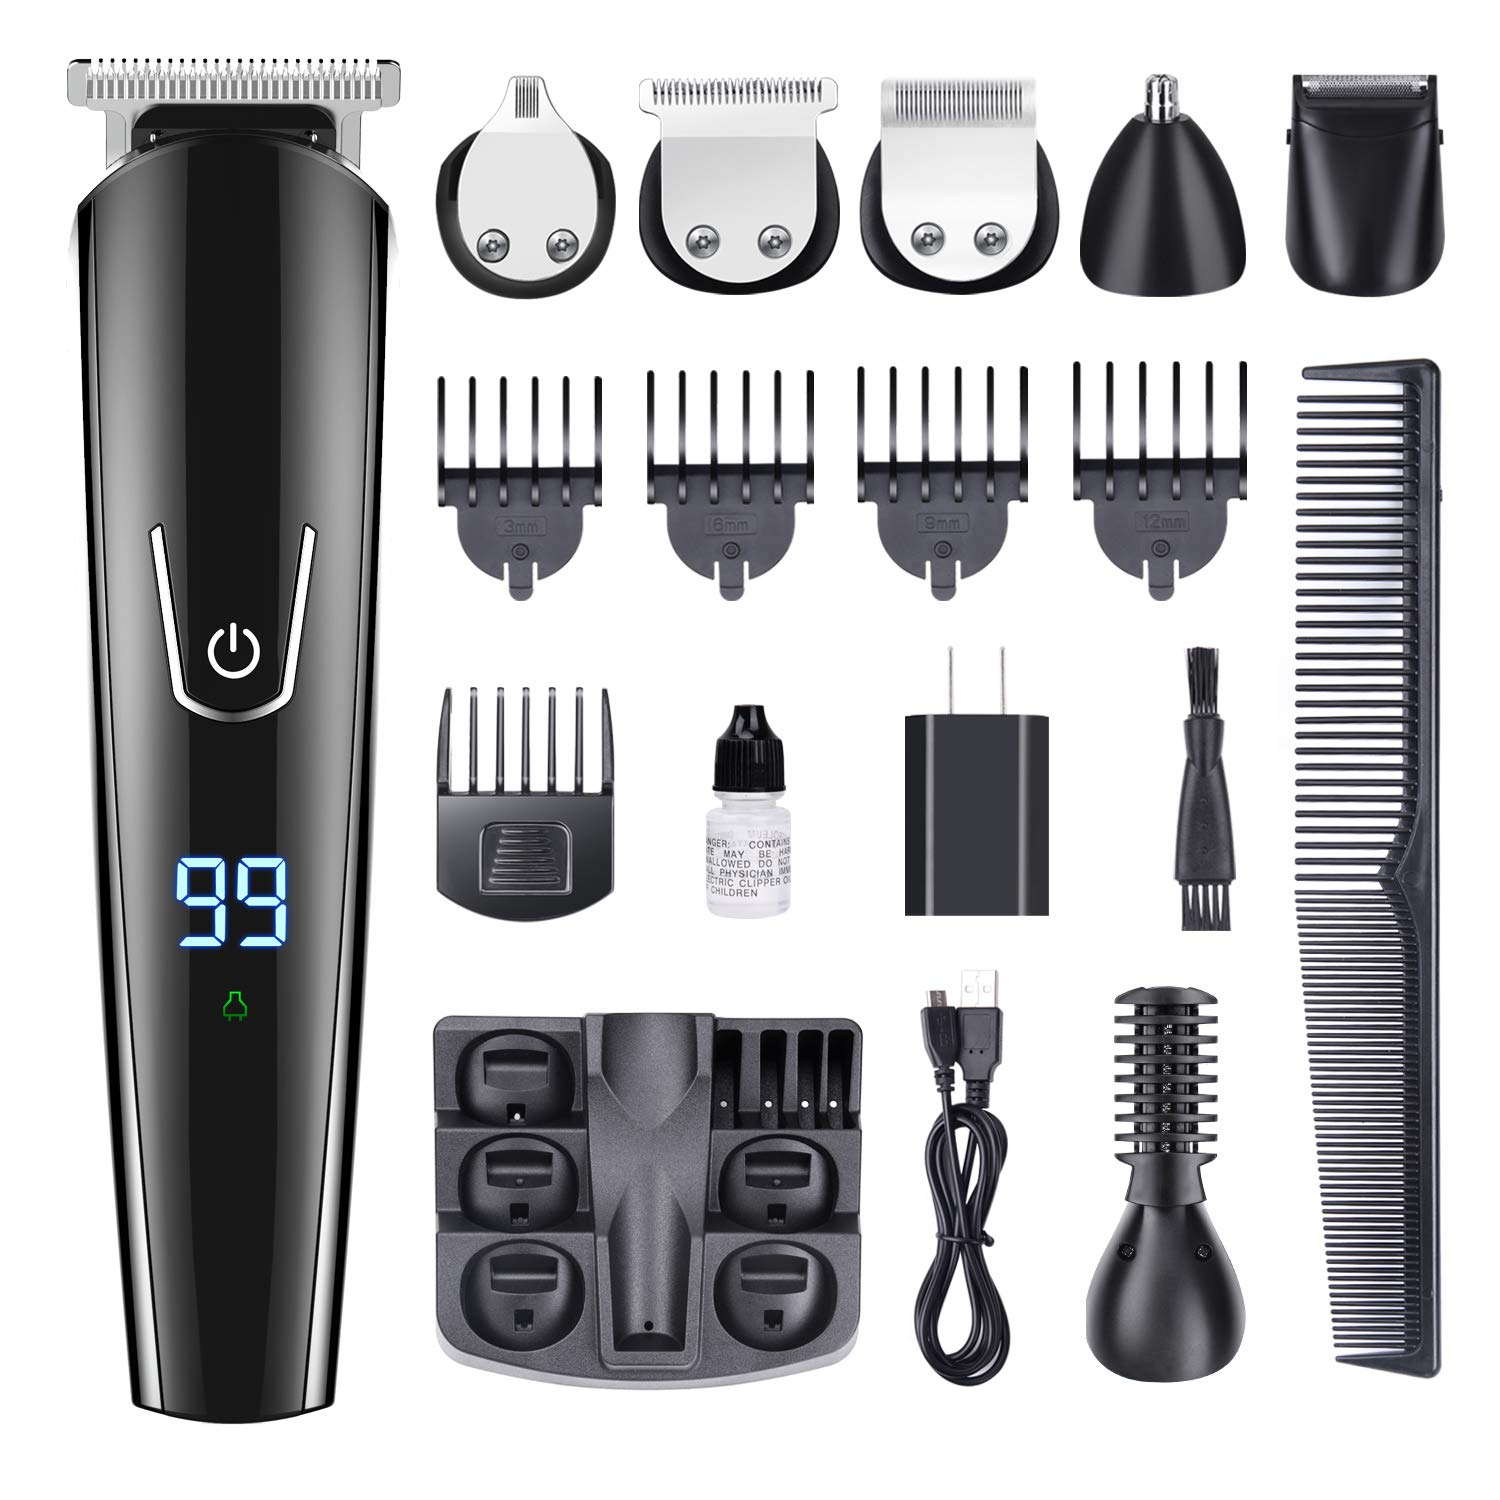 11 In 1 Muti-Functional Grooming Kit, Cordless Men's Beard Trimmer Hair Trimmer Kit